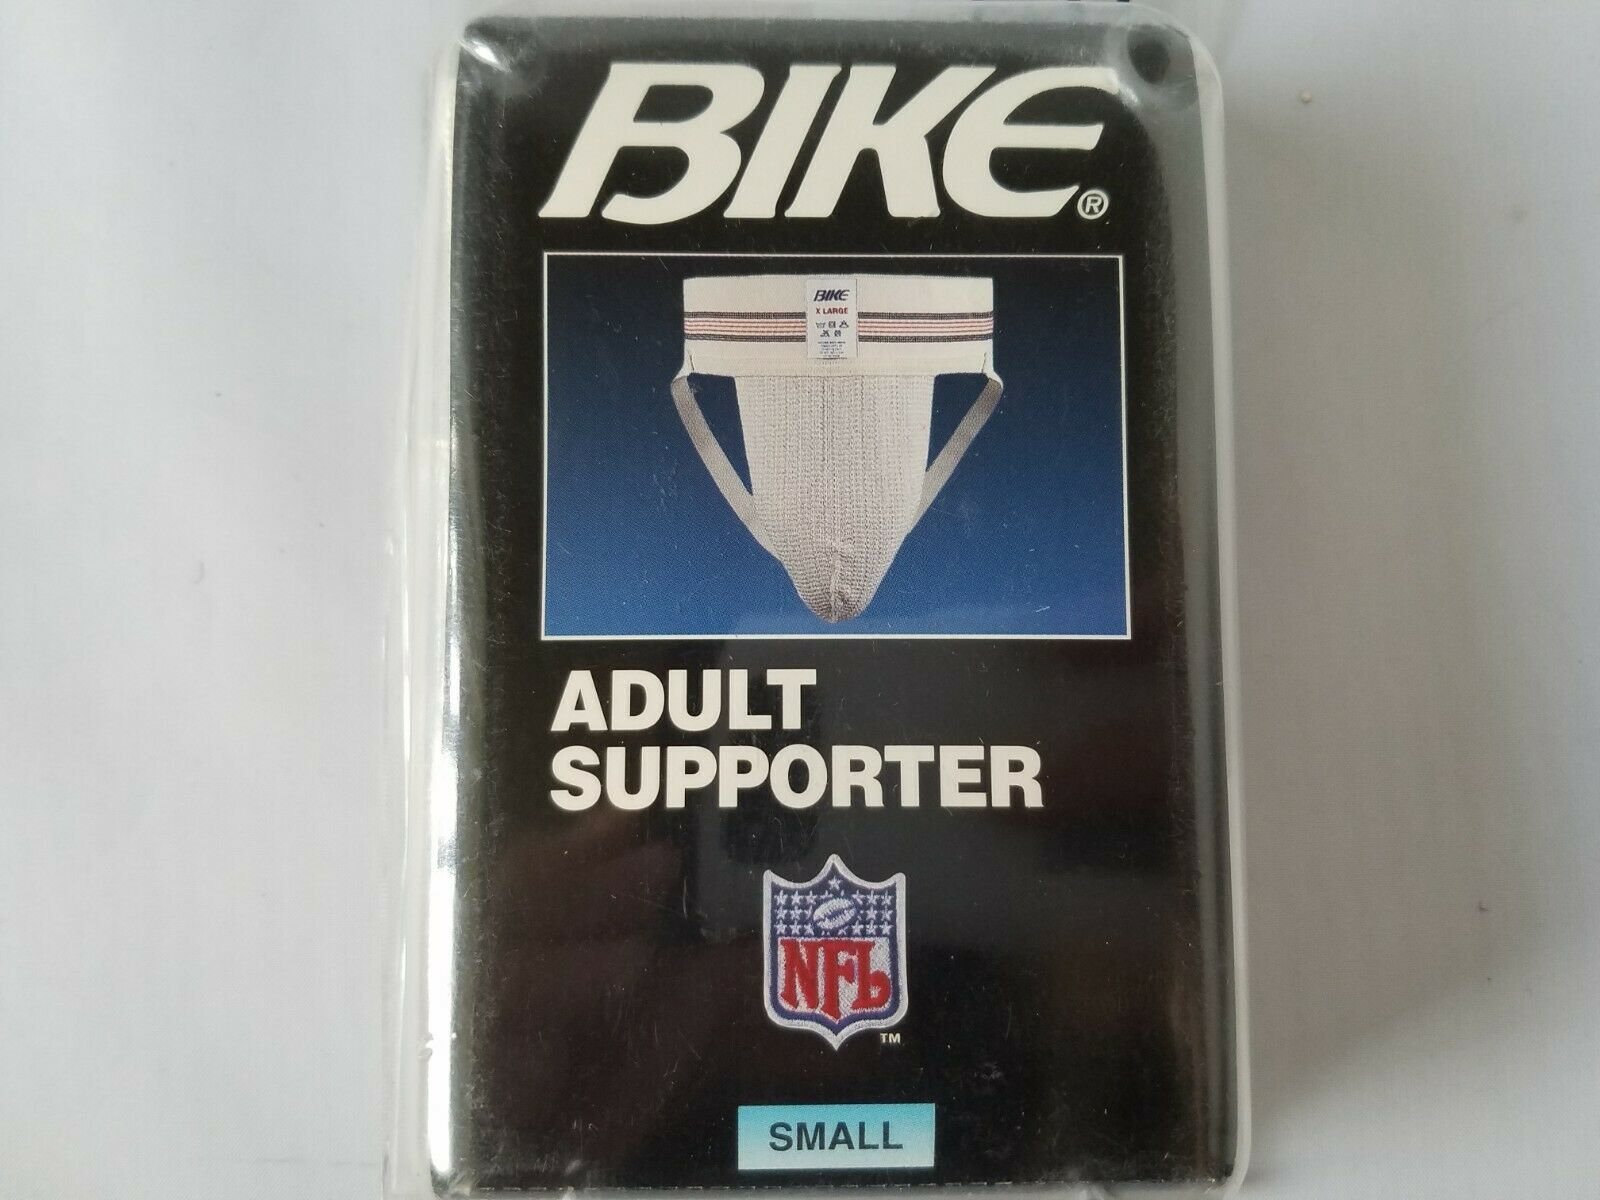 Adult Supporter Bike Athletic Company NFL Vintage Comfortable Cotton Pouch S image 2